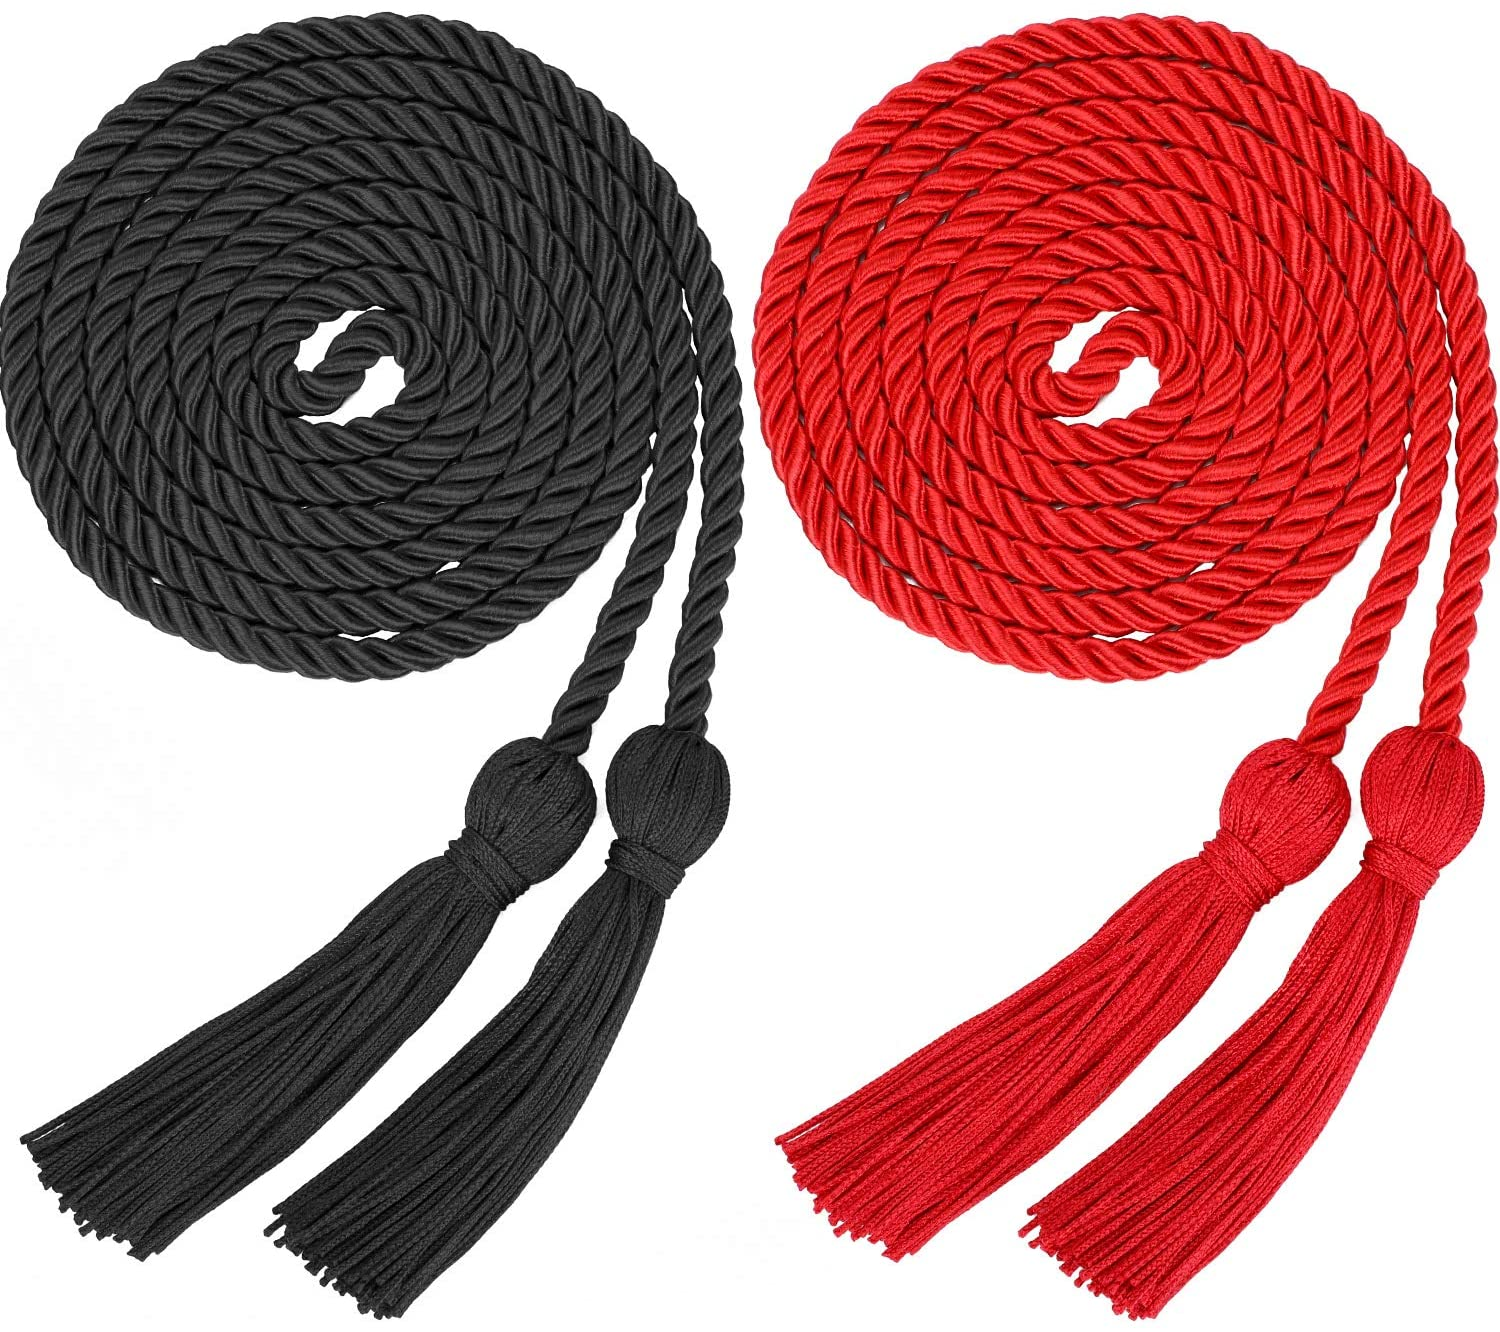 Yaomiao 2 Pieces Graduation Cords Polyester Yarn Honor Cord with Tassel for Graduation Students (Black and Red)